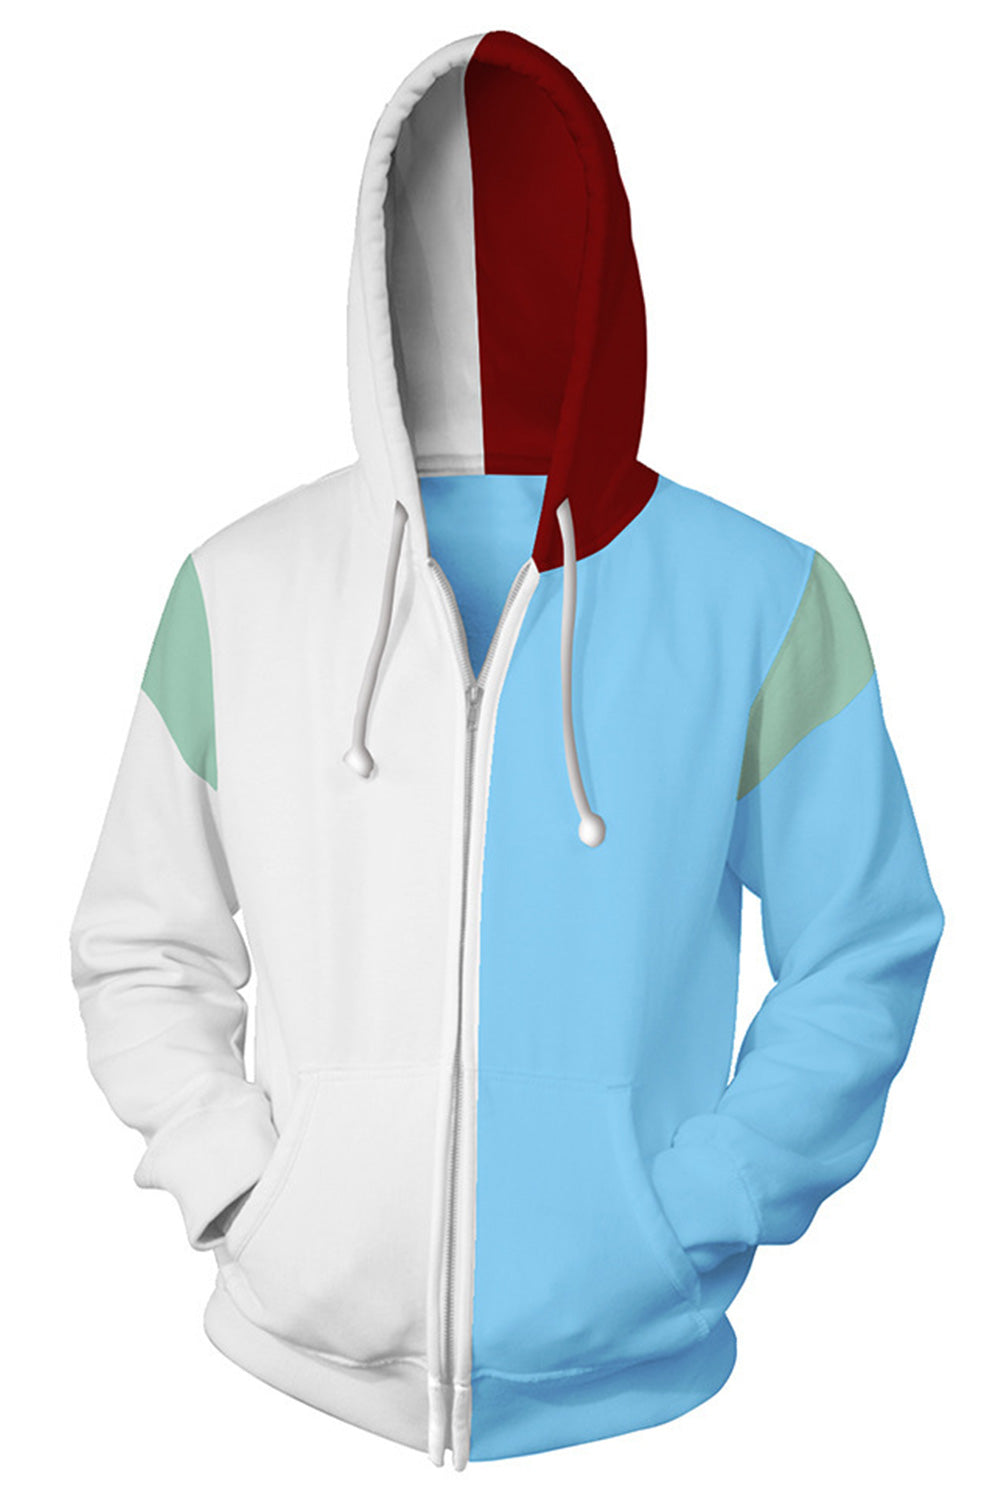 Boku no Hero Academia Todoroki Shoto Hoodie Cosplay Costume